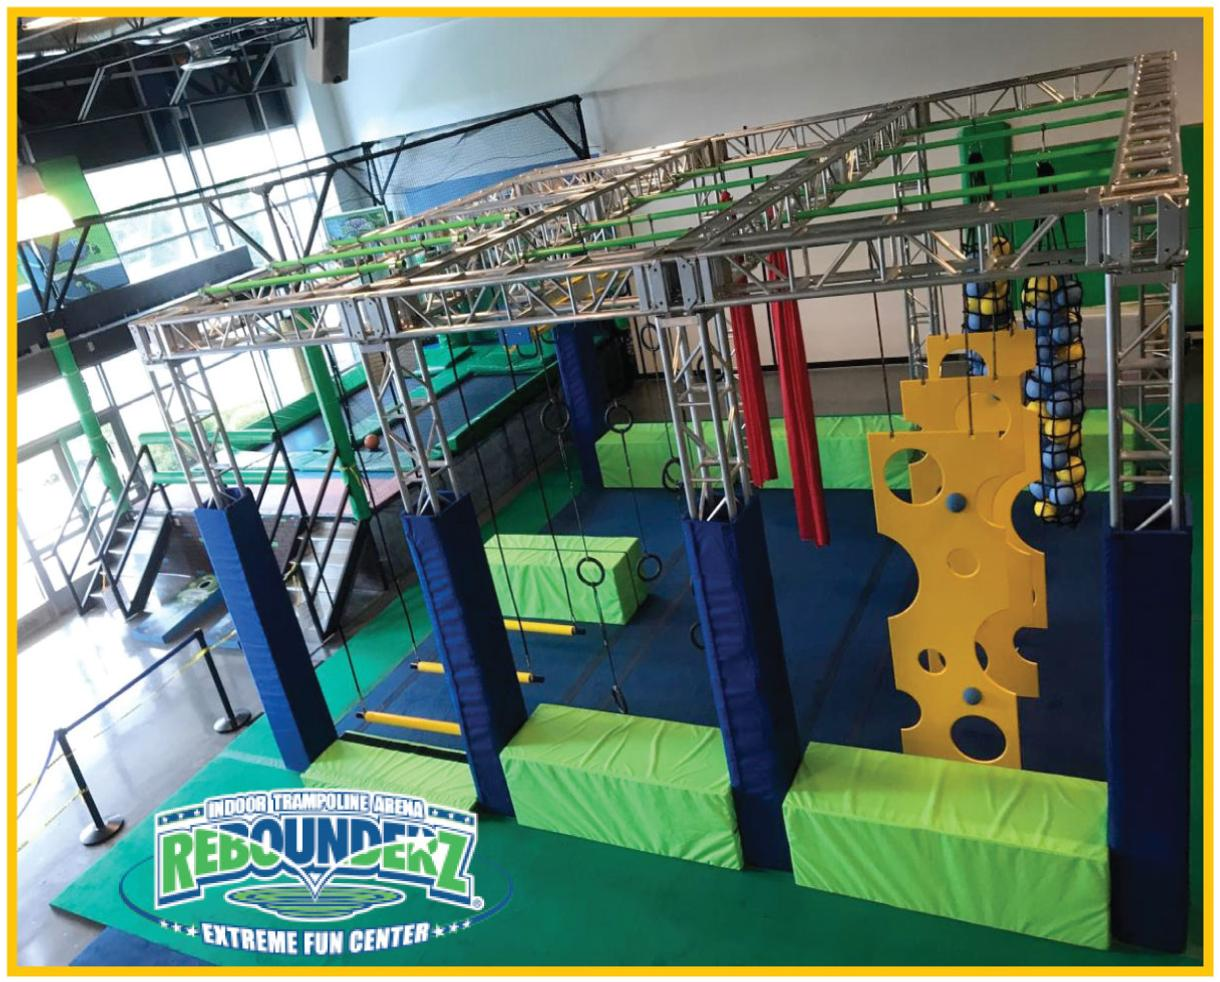 $25 for All-Day Weekday Unlimited Jump Pass and NEW Ninja Warrior Course at Rebounderz in Sterling (32% Off)